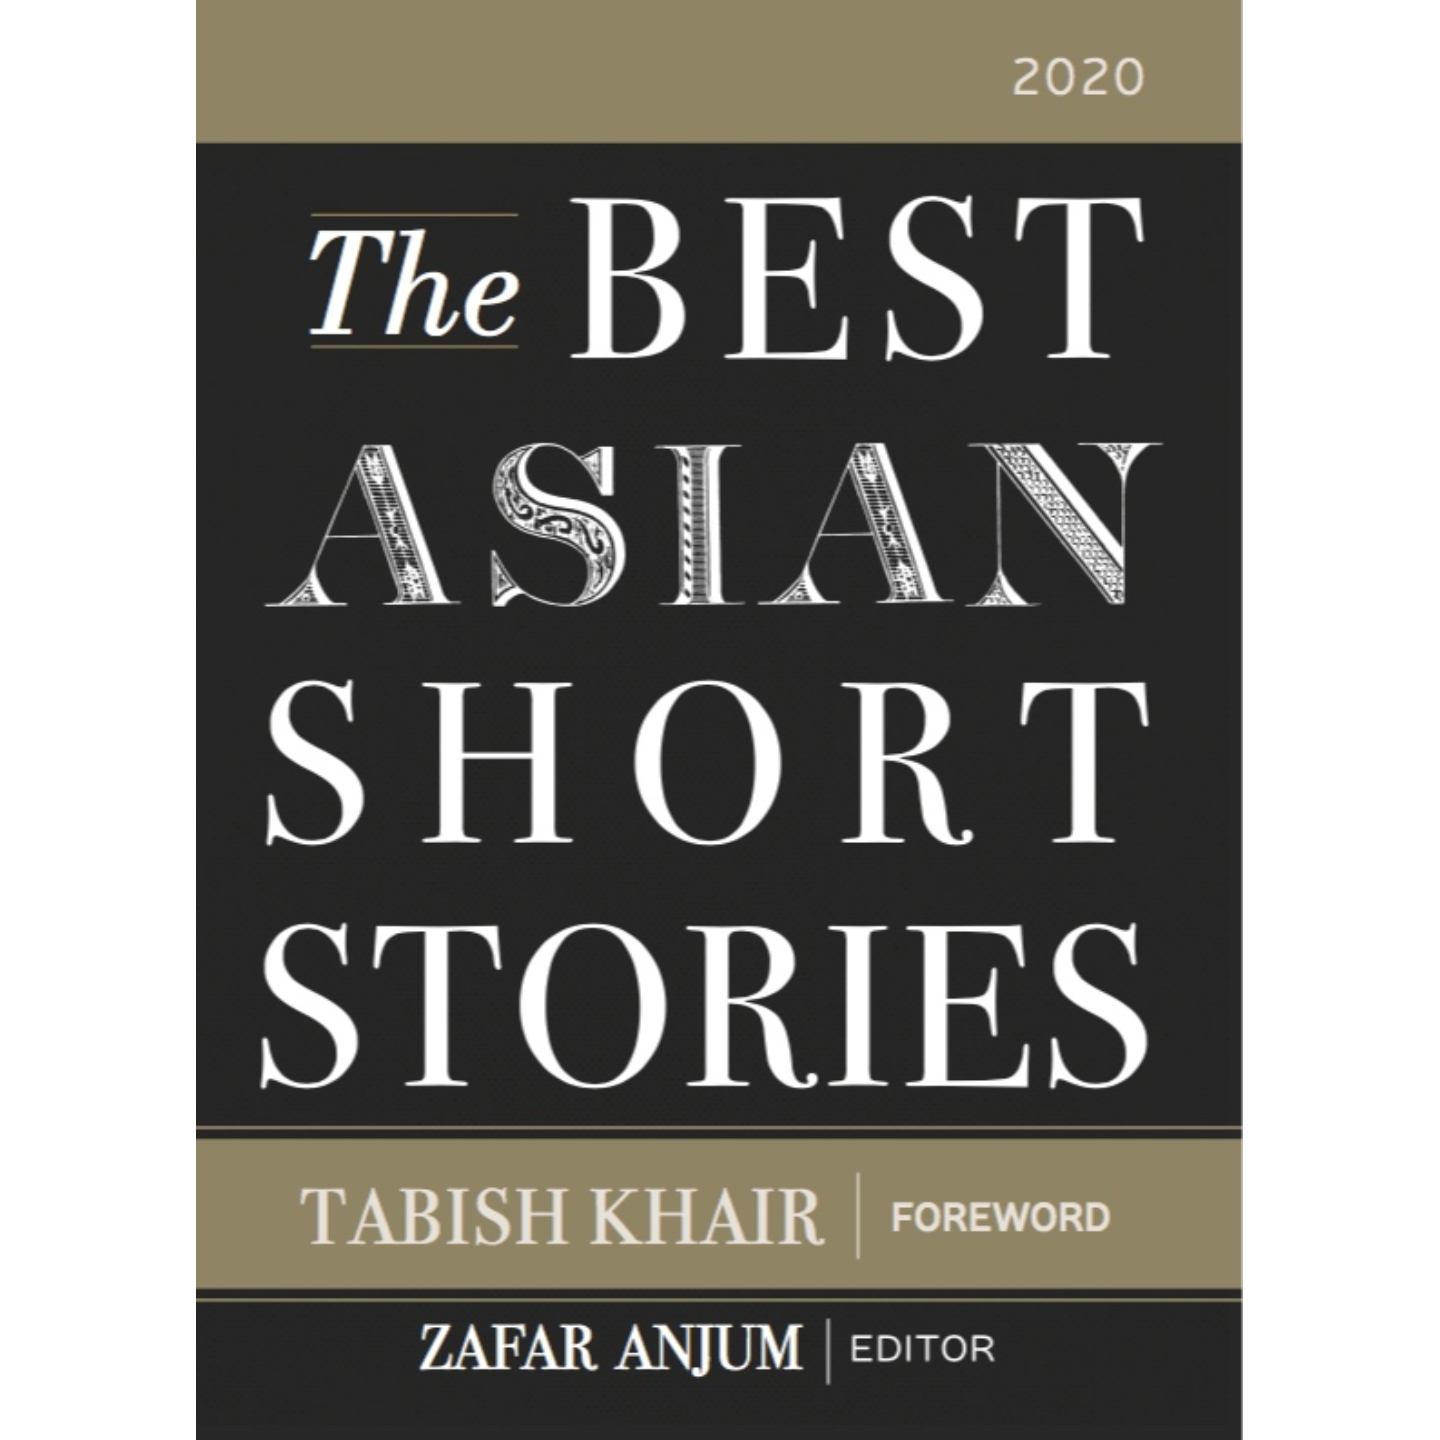 The Best Asian Short Stories 2020